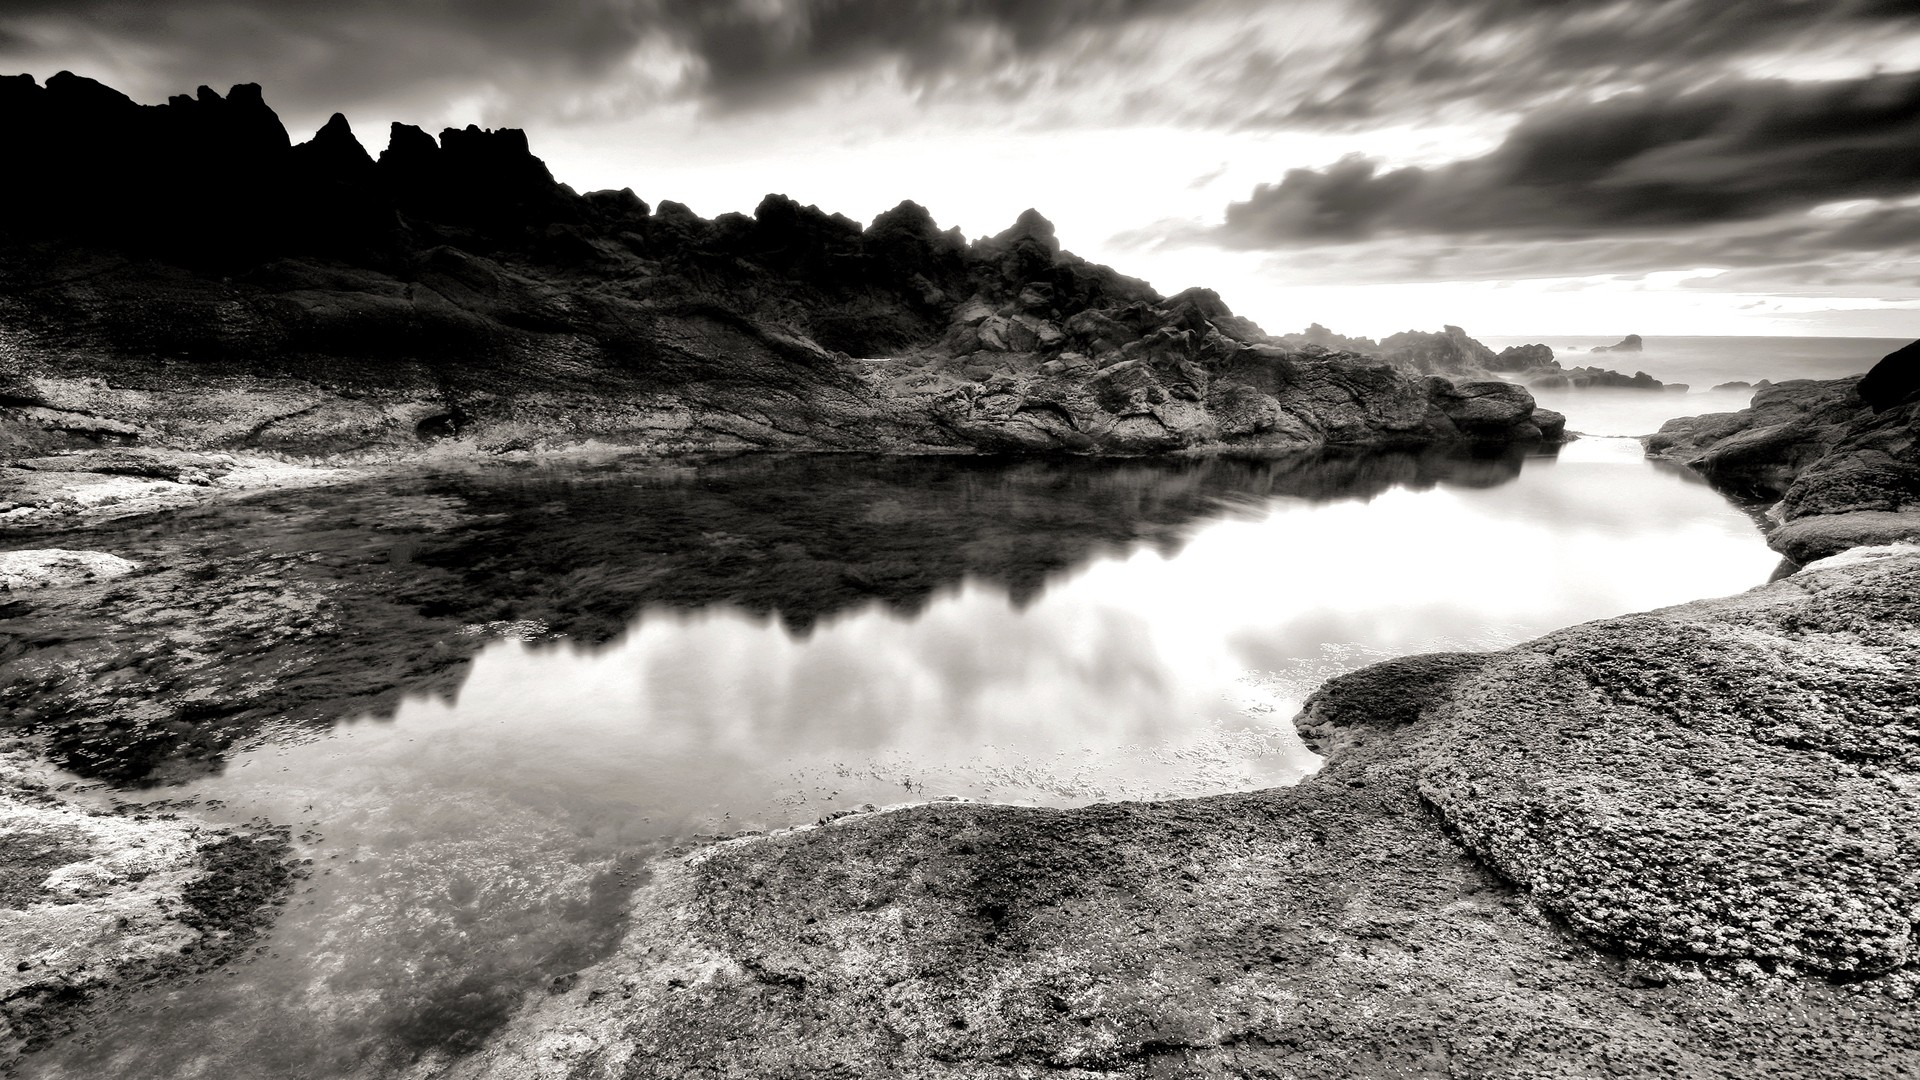 Black And White Nature HD Wallpaper For Windows